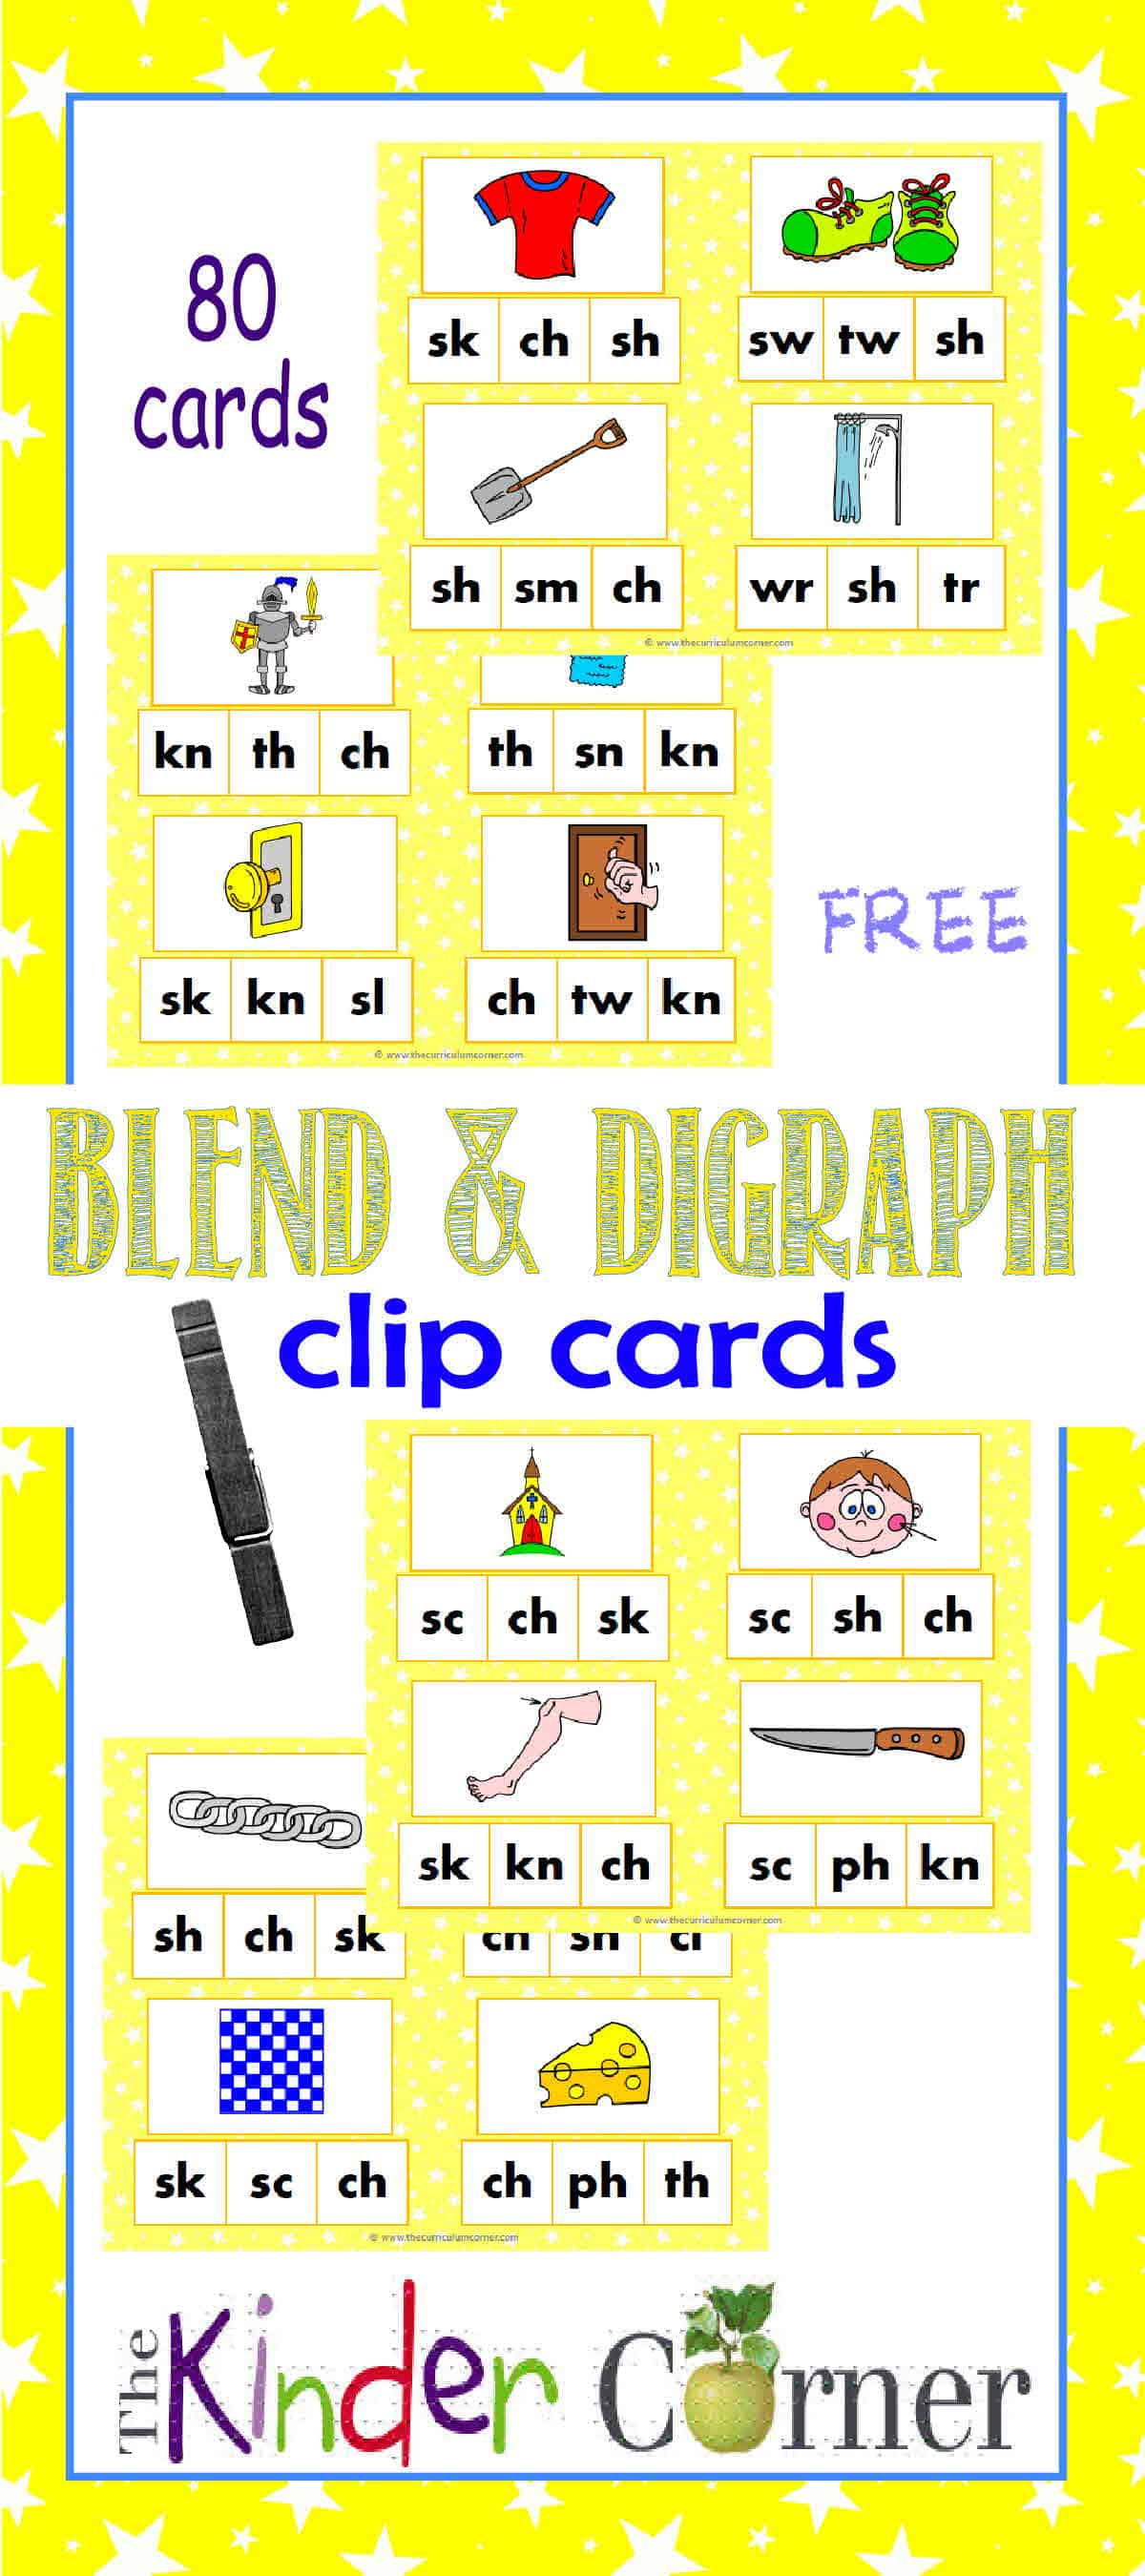 Blends Amp Digraphs Clip Cards